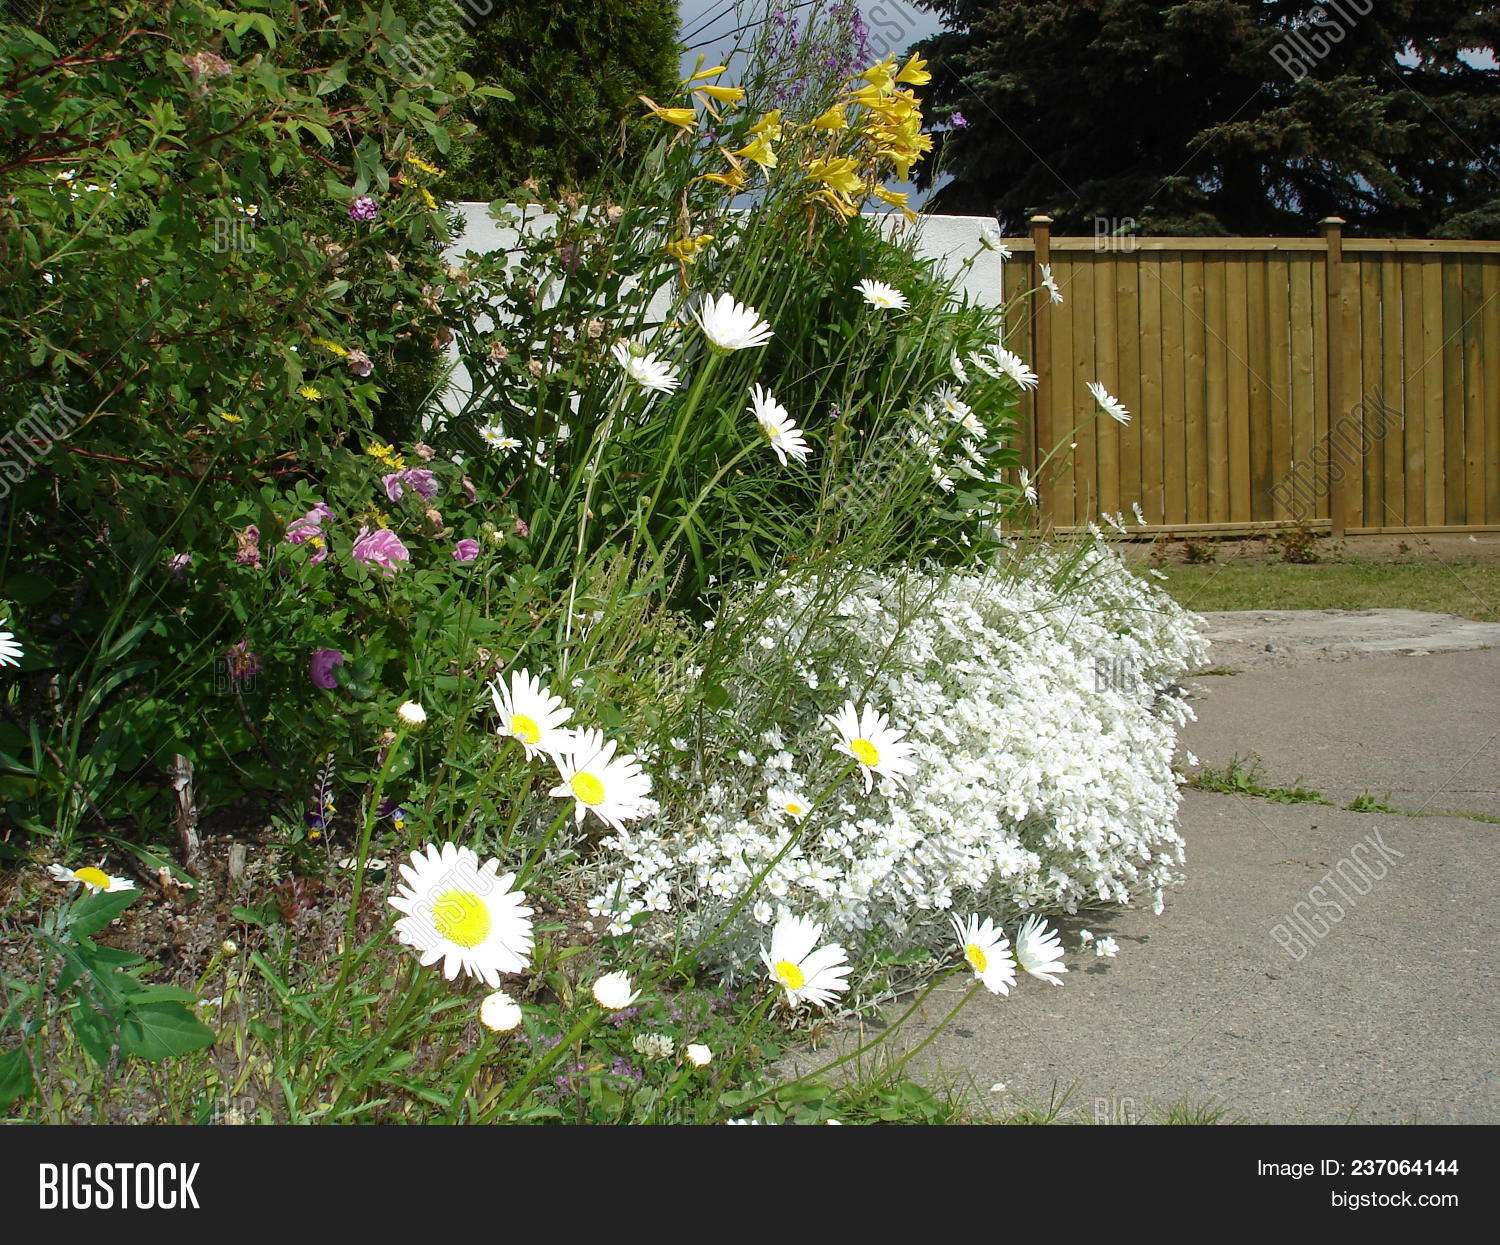 Wispy Flower Bed With White And Tall Flowers Photo Stock